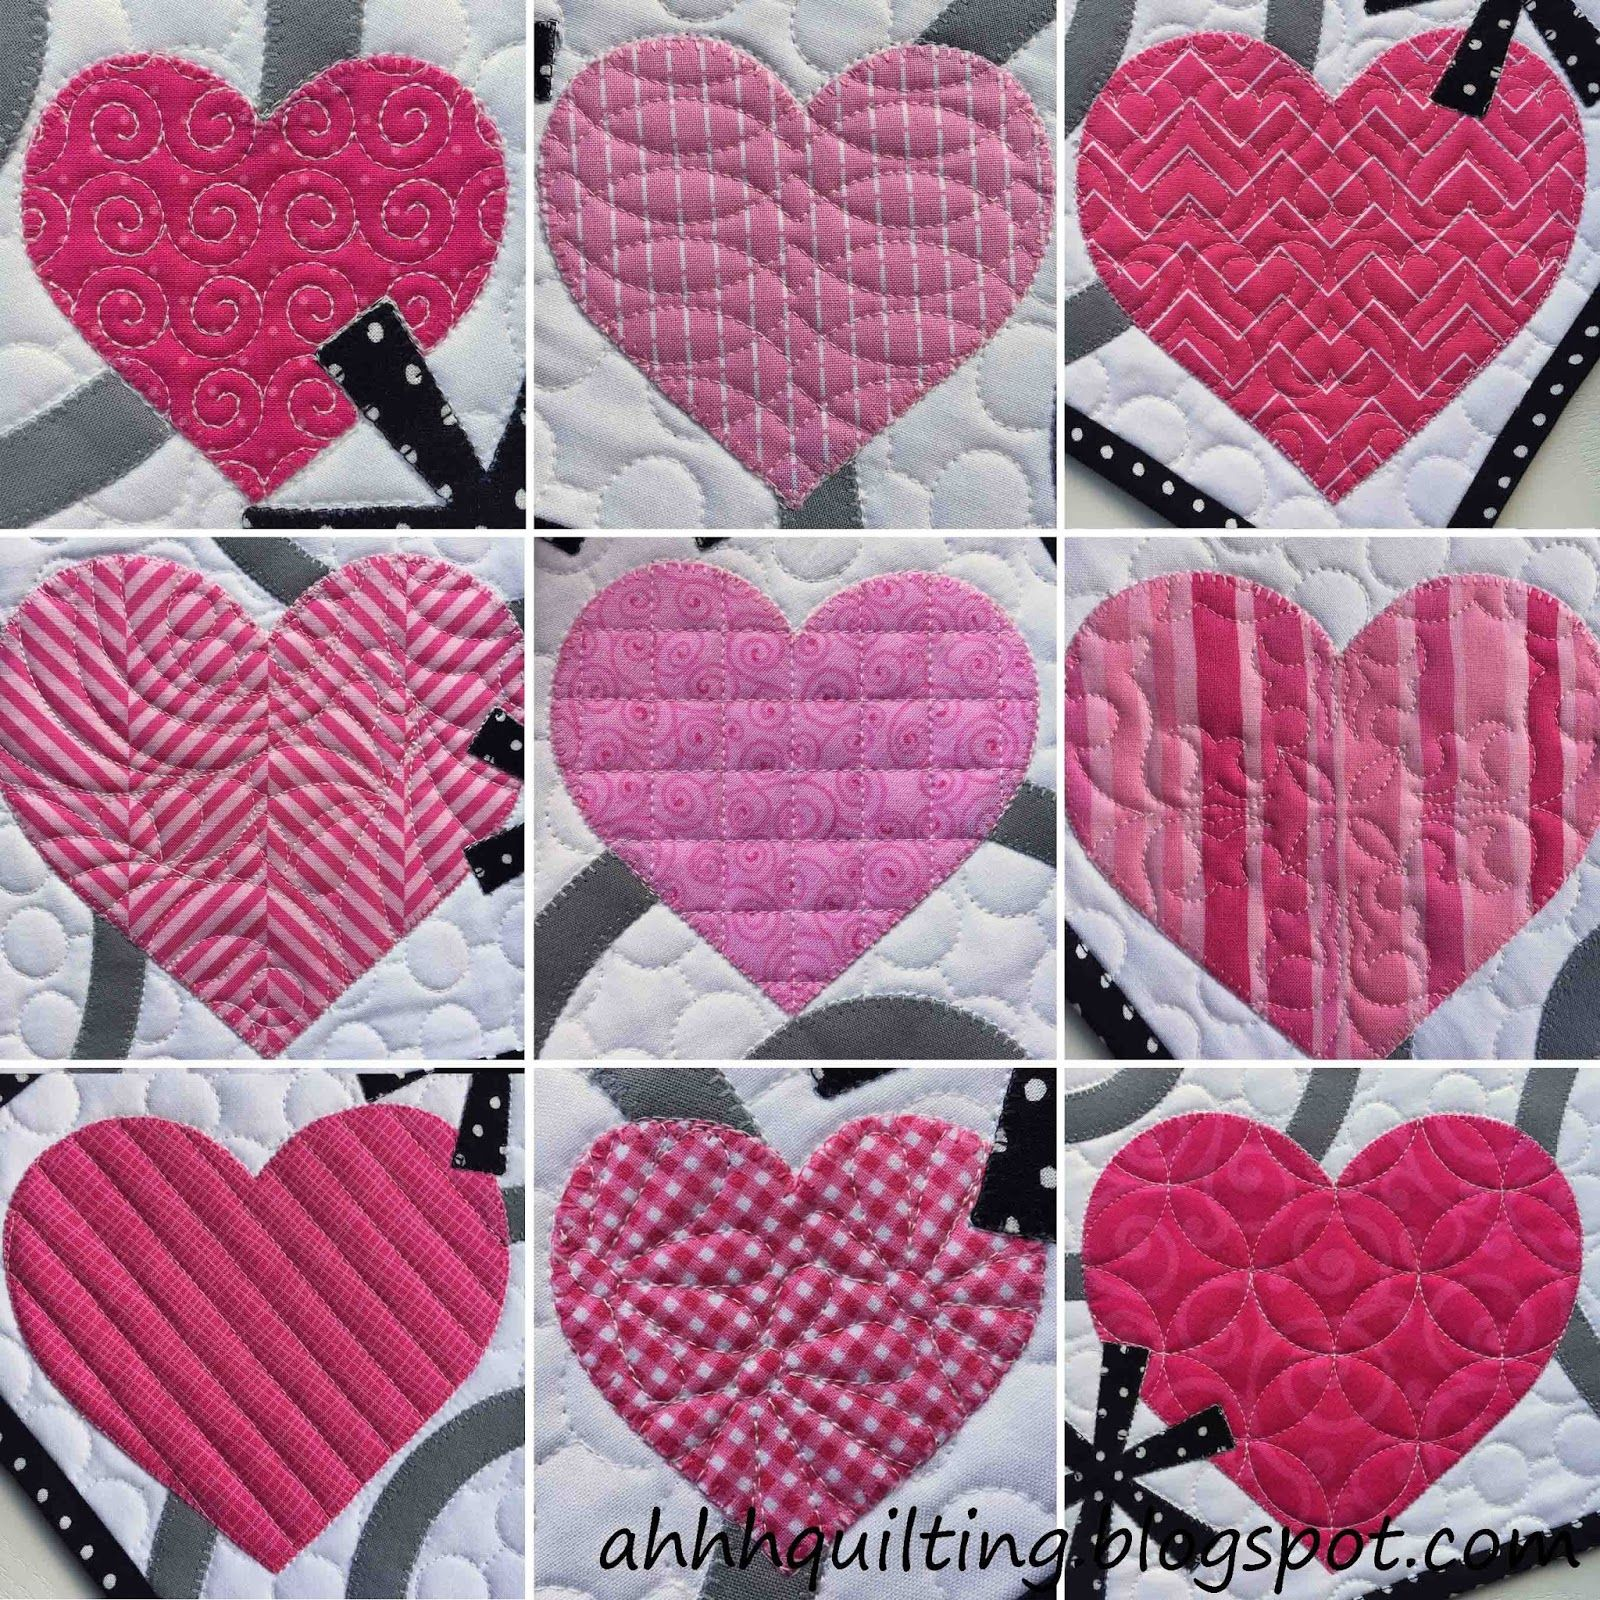 Free Motion Quilting Designs Hearts : Here s the quilt I ve been working on this week. After months of not feeling like doing much of ...